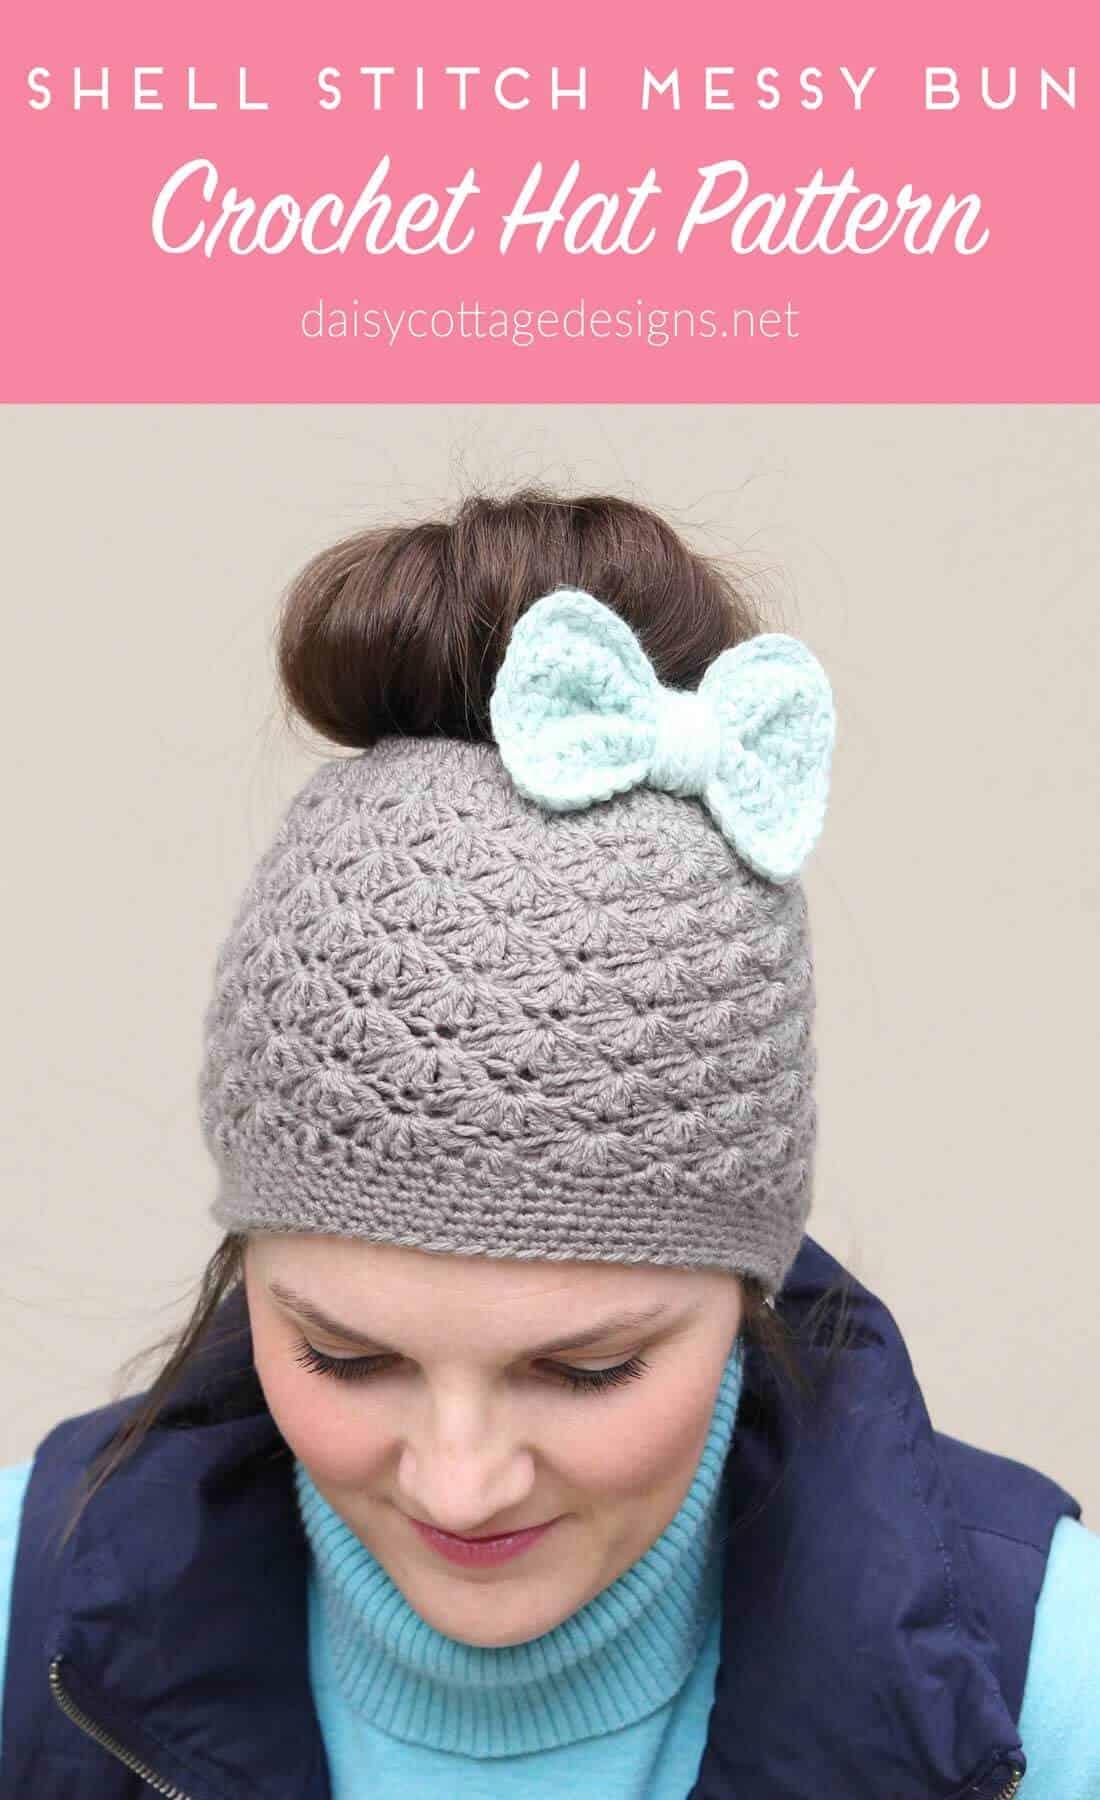 Crochet Messy Bun Hat : Messy-Bun-Hat-Crochet-Pattern-Feature - Daisy Cottage Designs